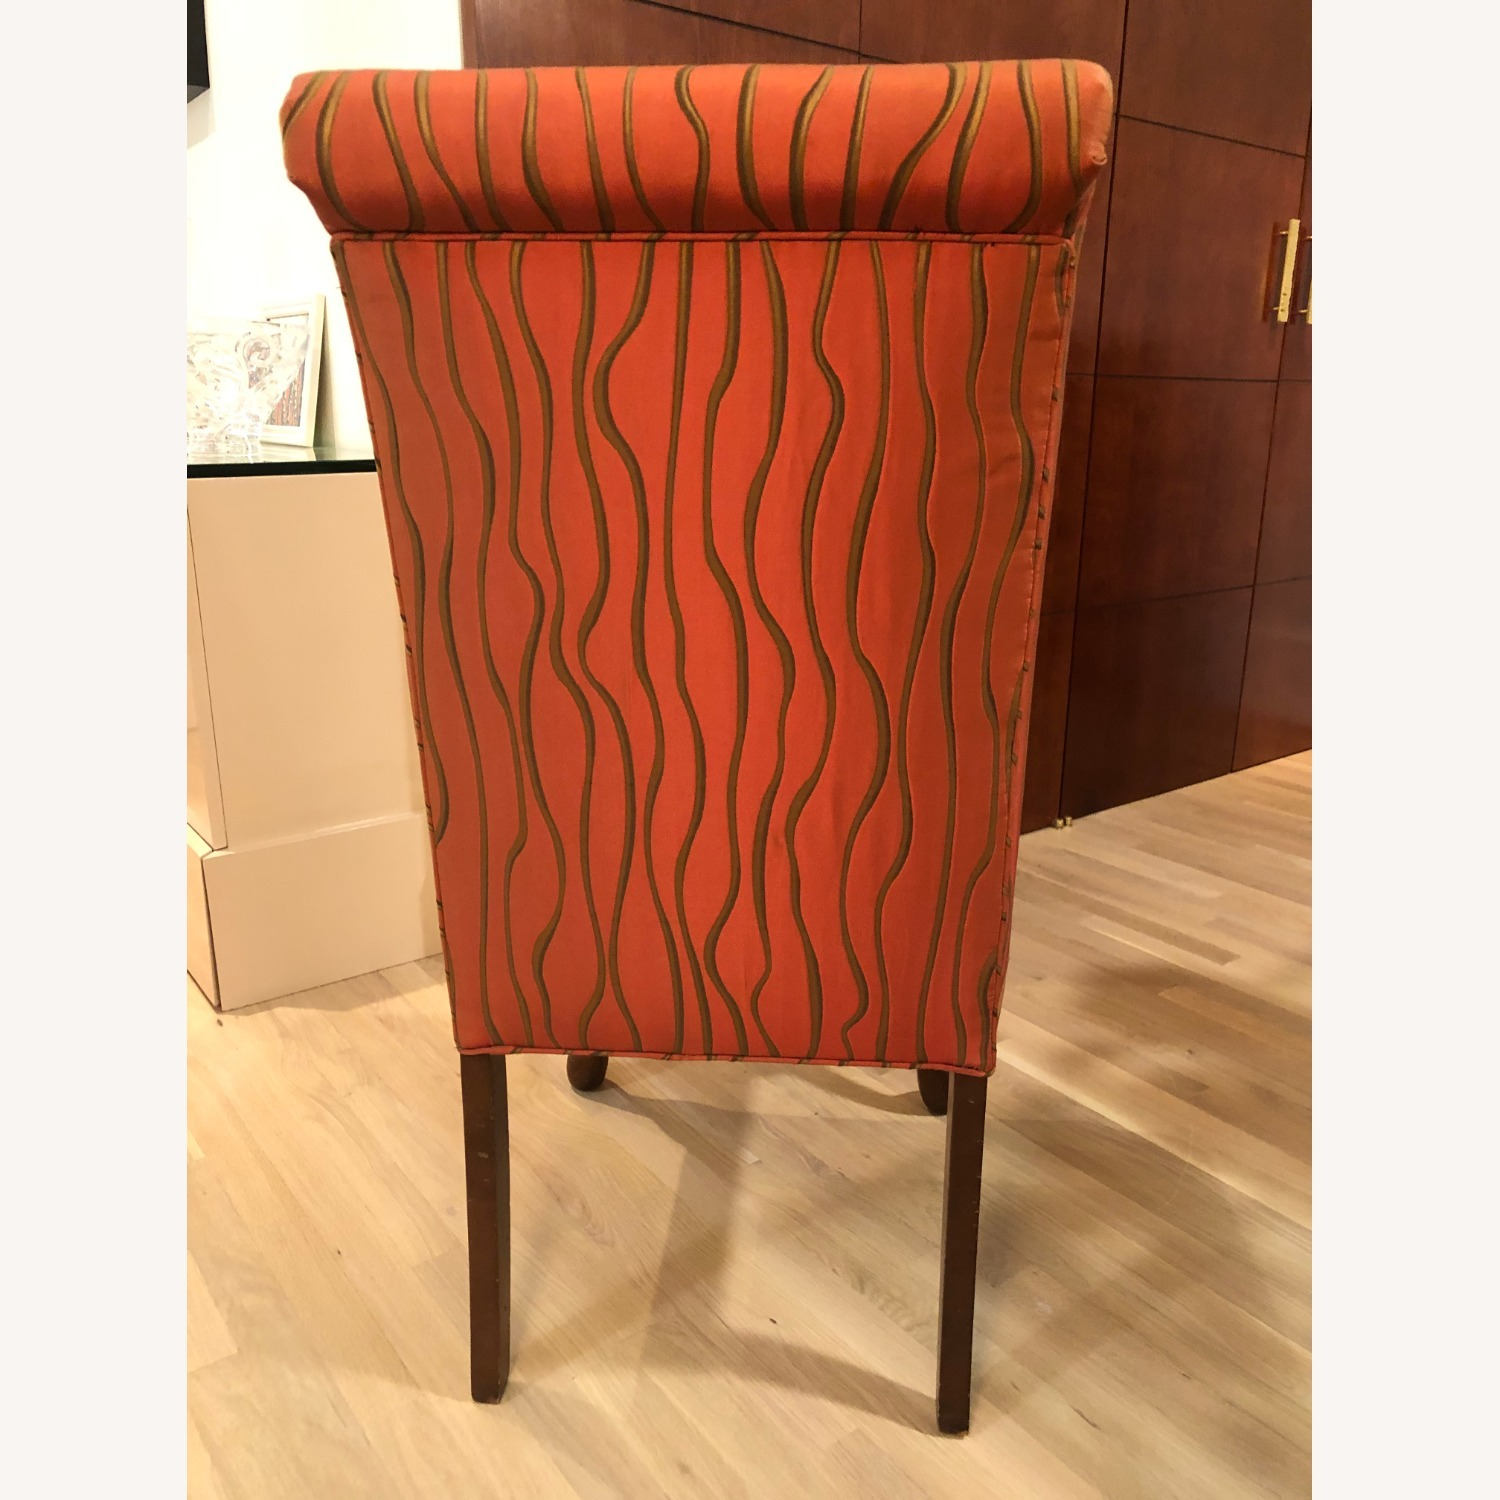 Vintage Custom Scroll Back Dining Chairs - image-3